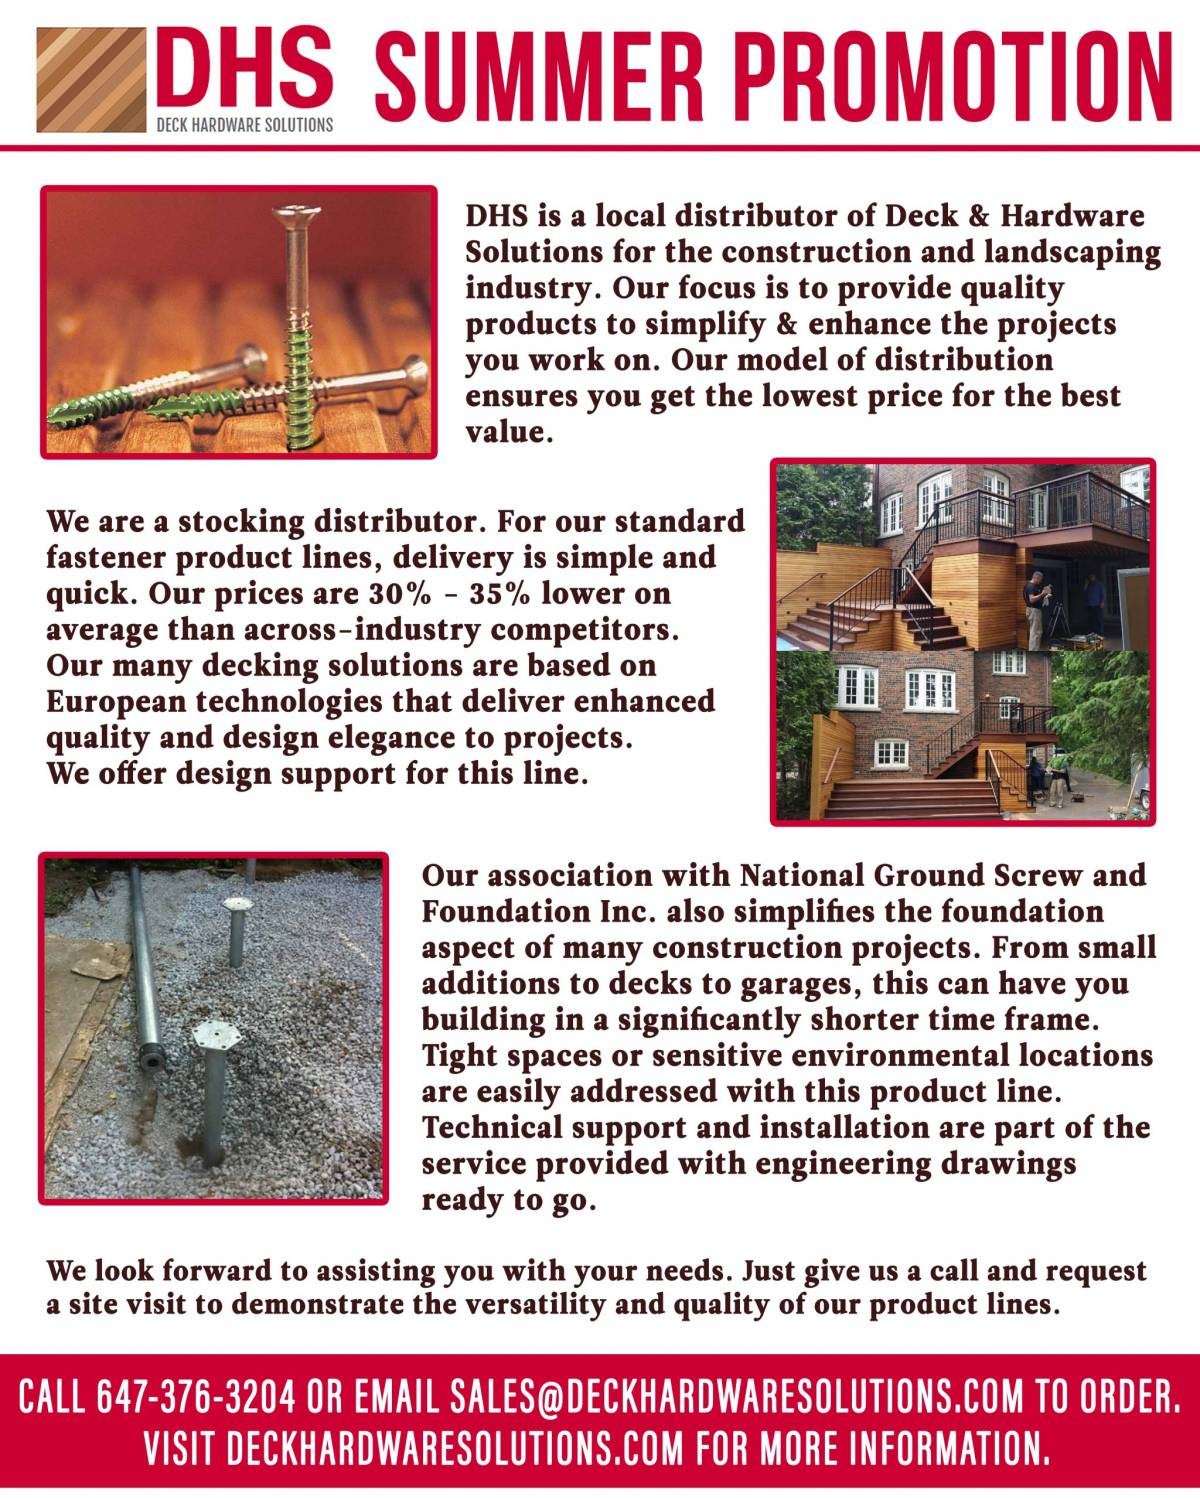 Deck Hardware Solutions Description